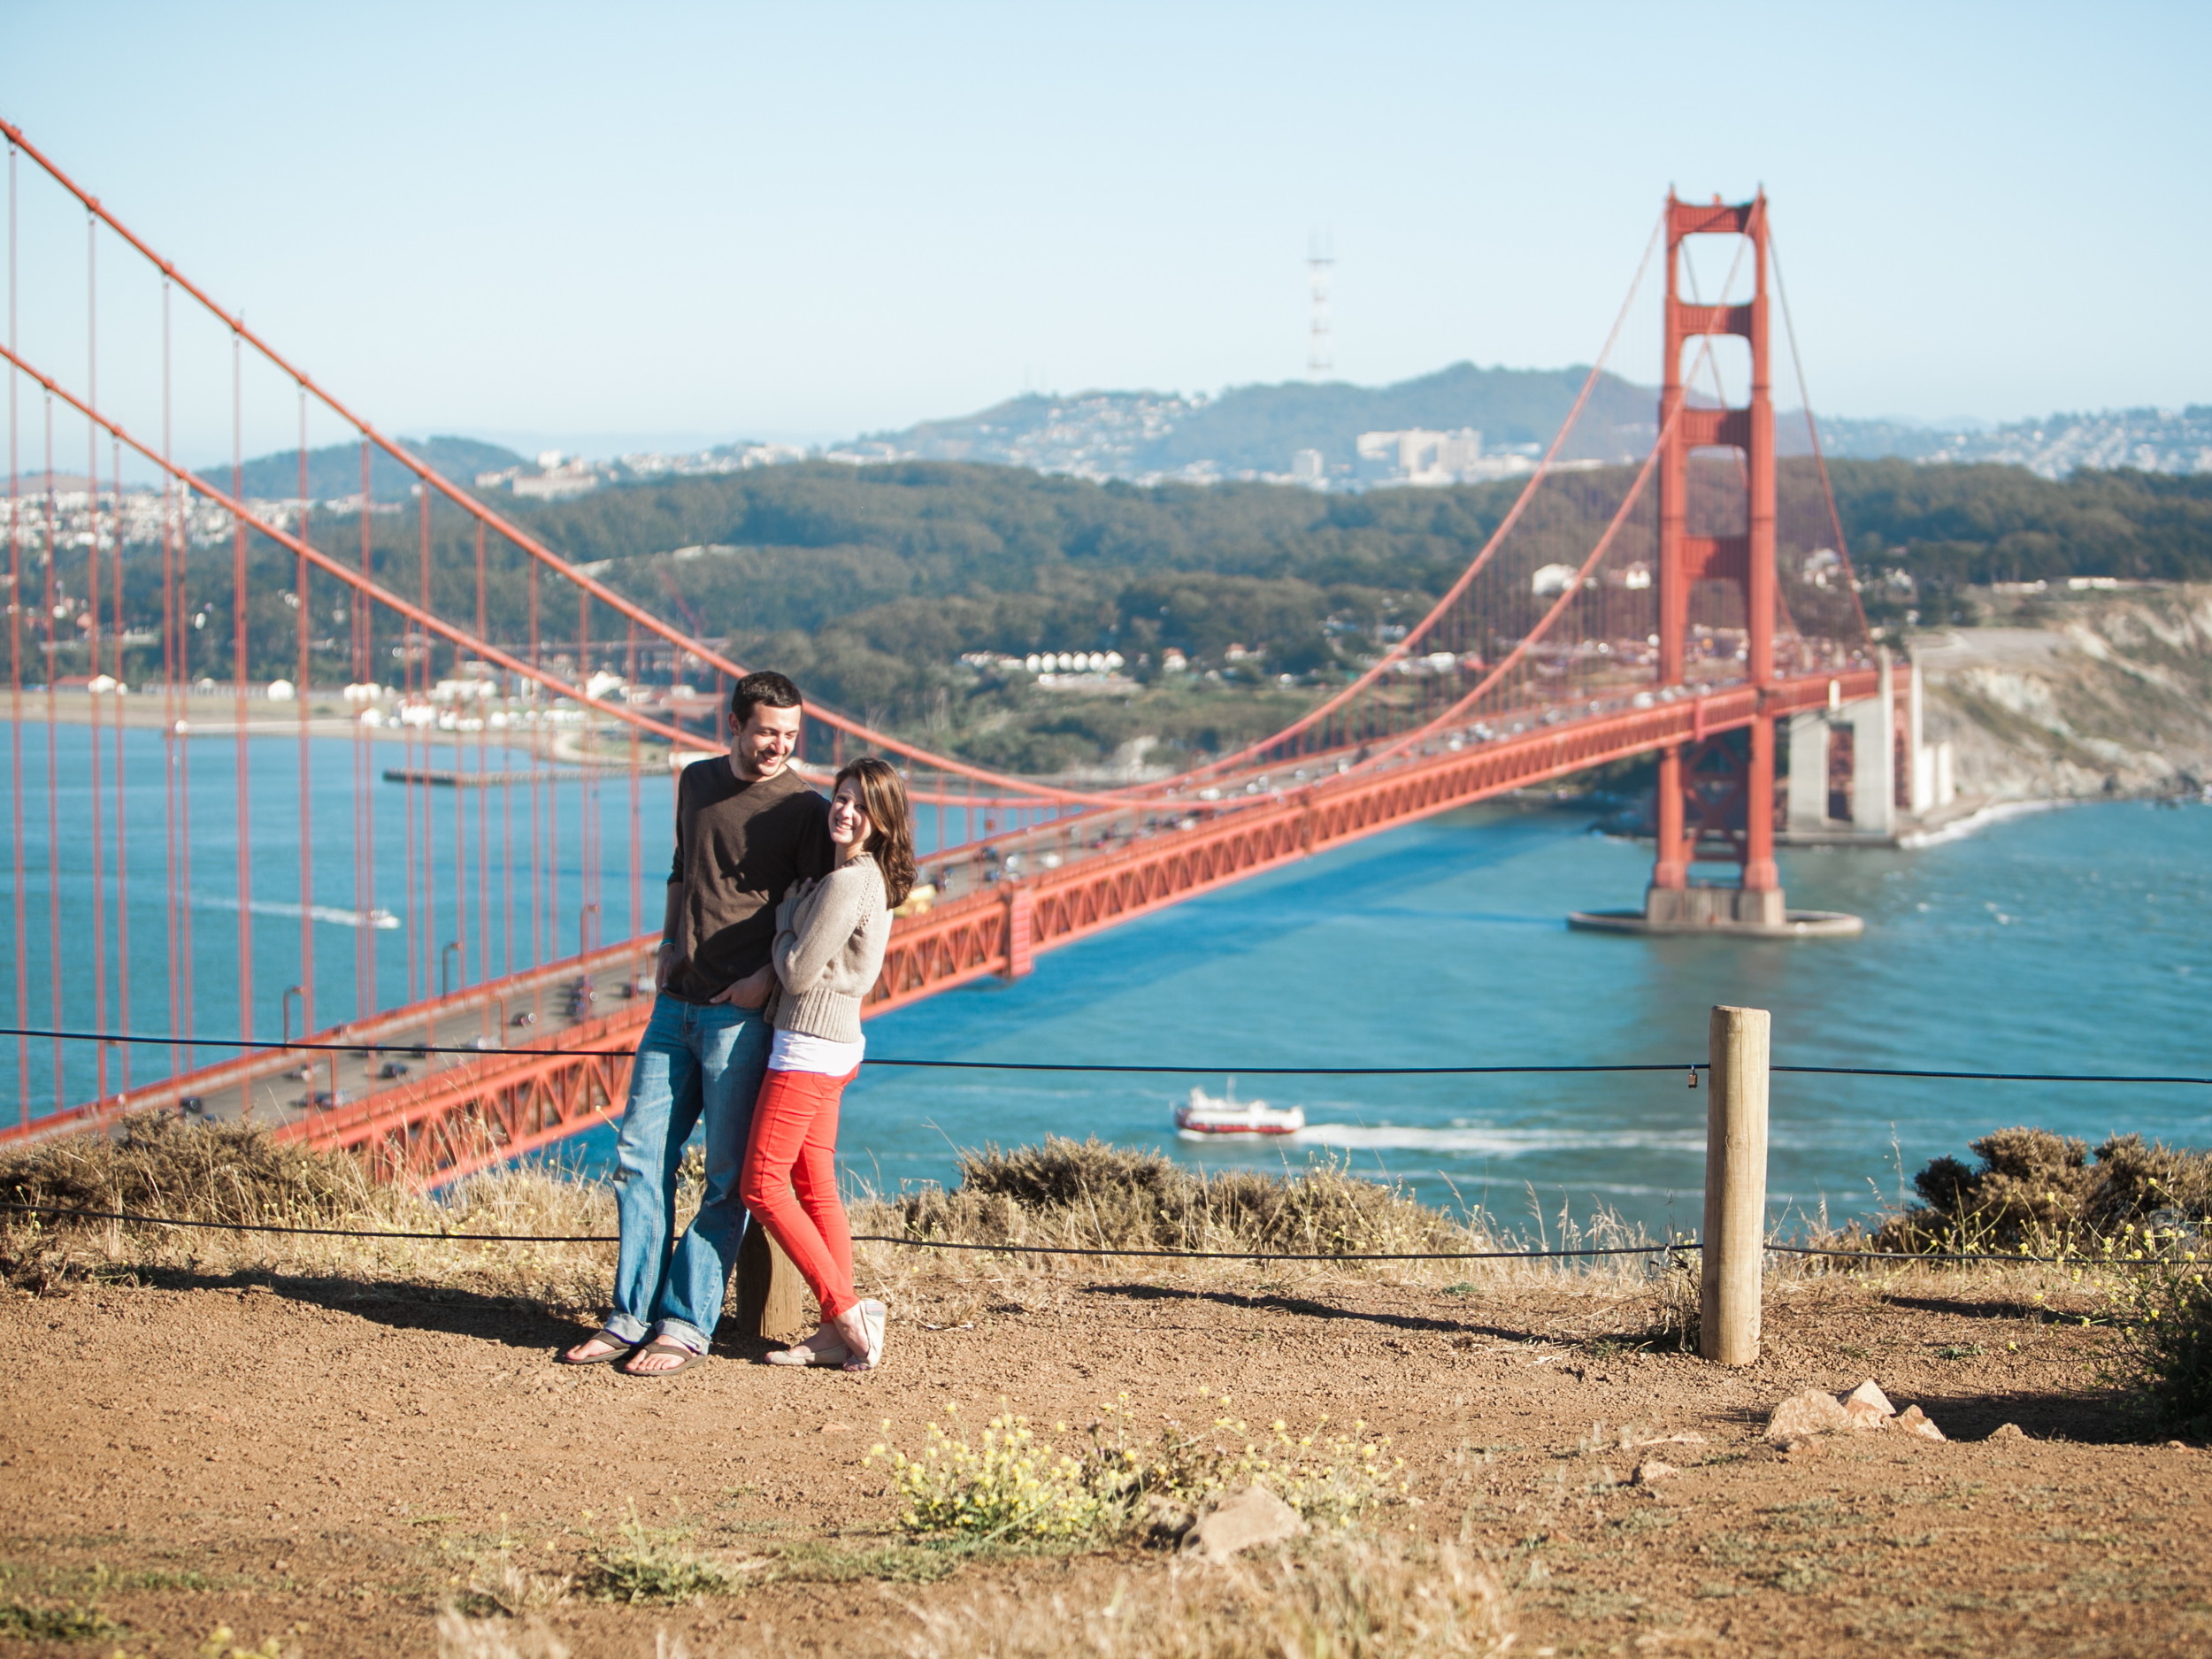 San-Francisco-California-Wedding-Photography-Engagements-Drollette-Travel-20.jpg